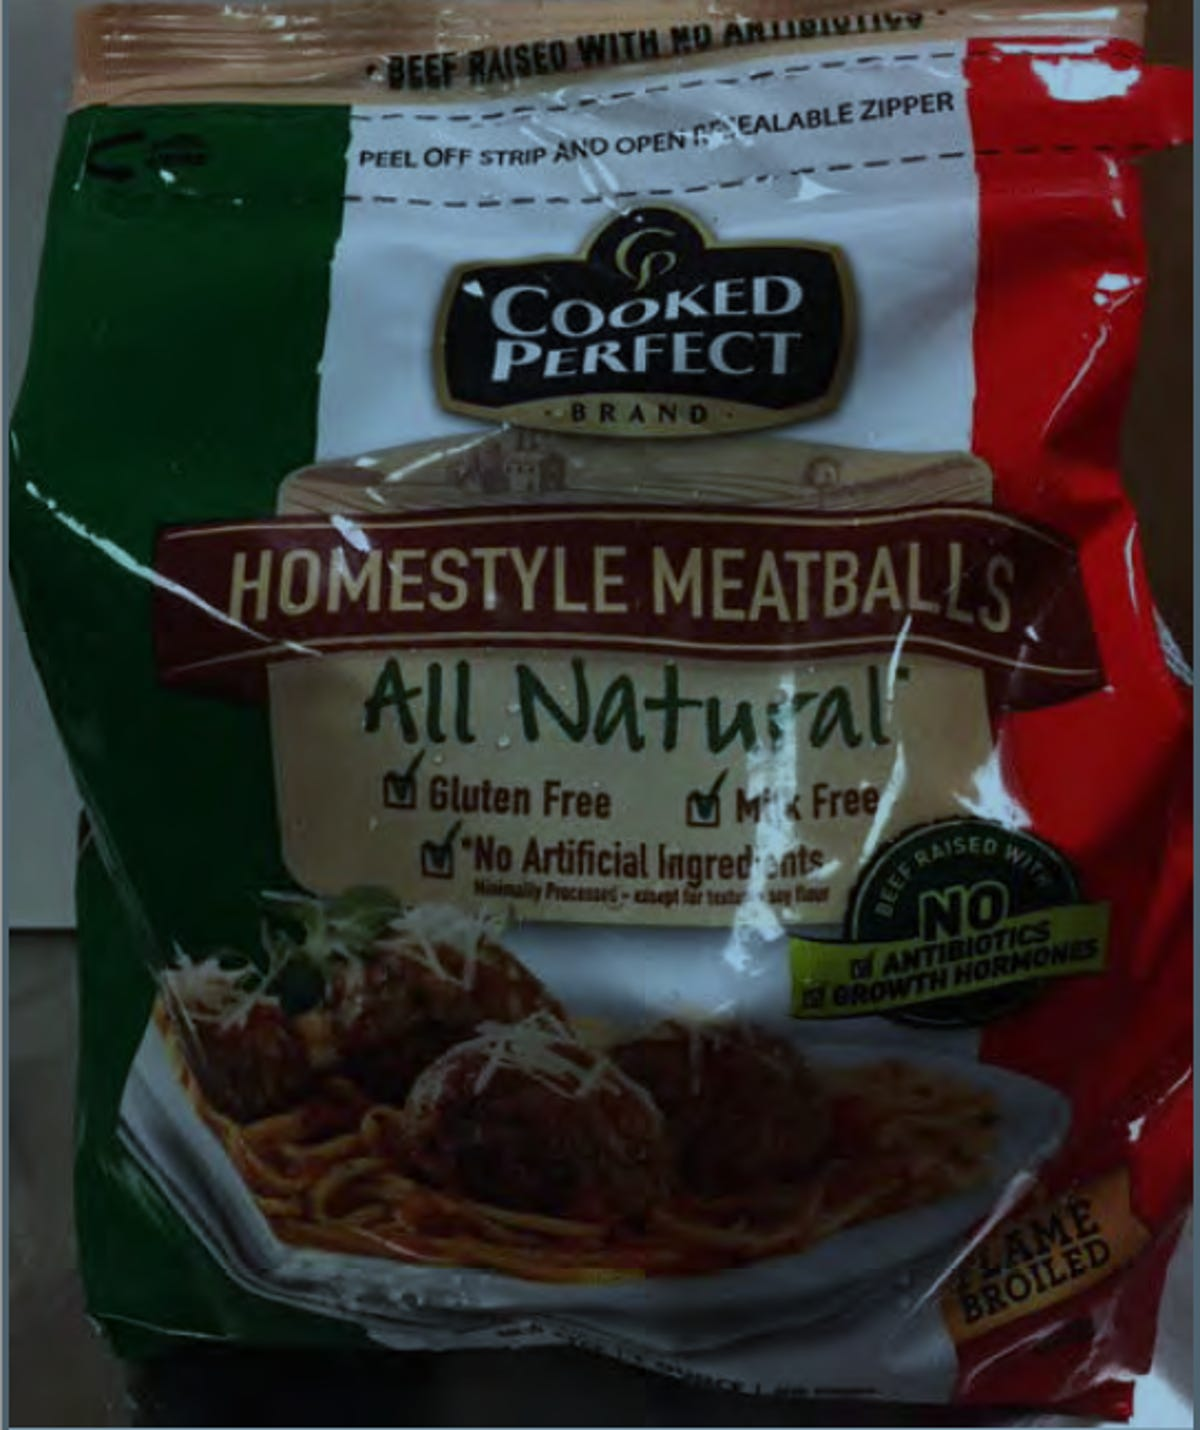 Best Frozen Meatballs 2020 Meatball recall 2019: More than 26 tons of frozen meatballs recalled